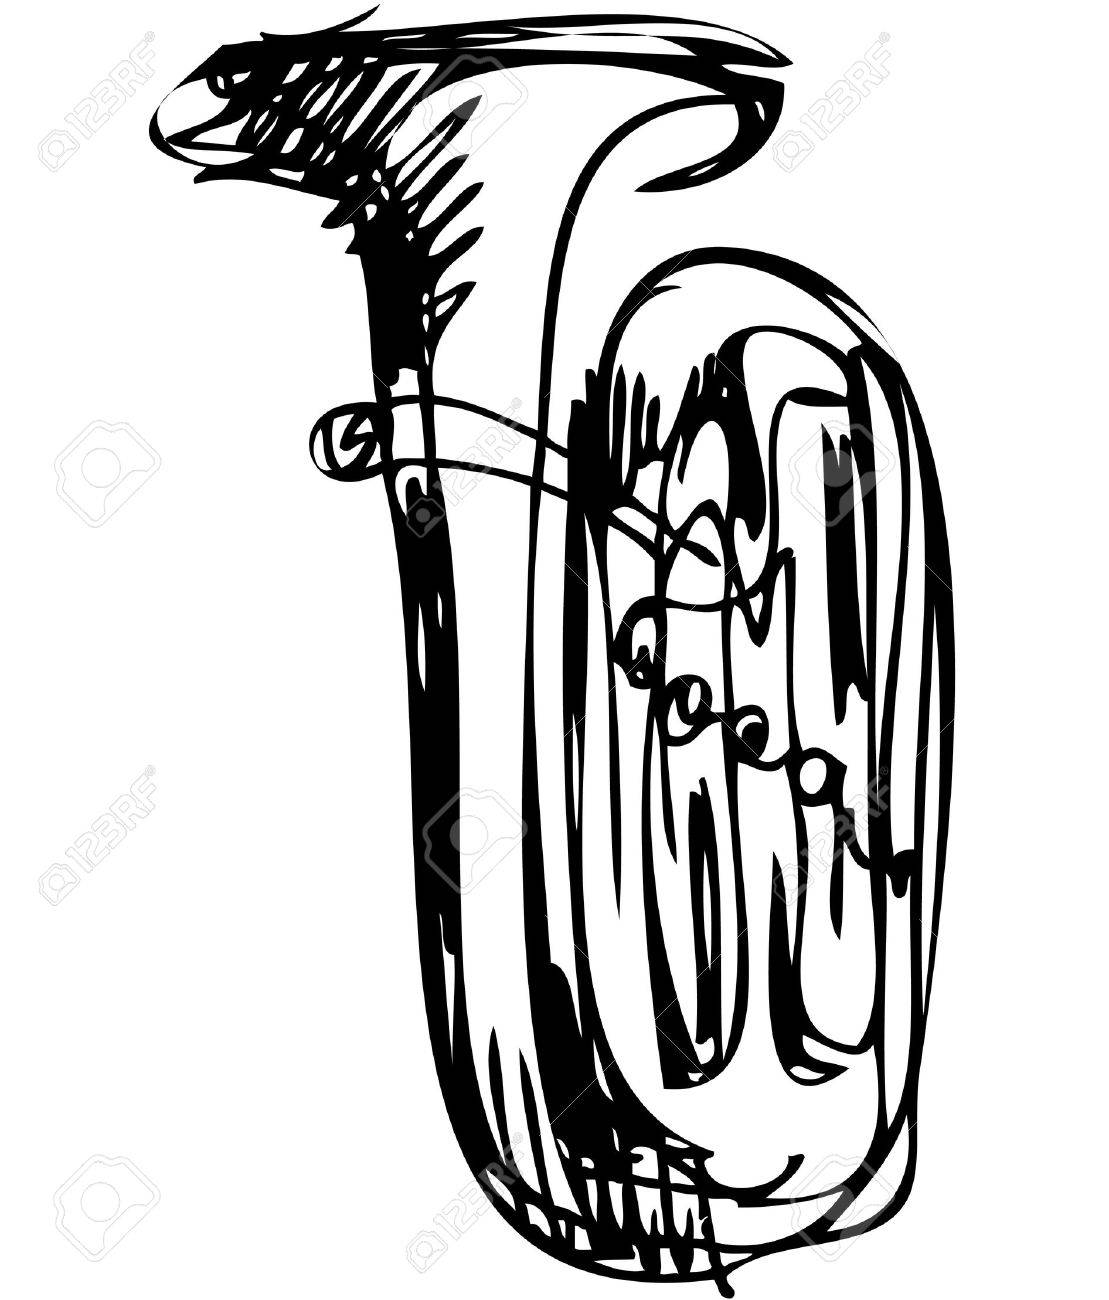 a sketch of the copper tube musical instrument - 11119039